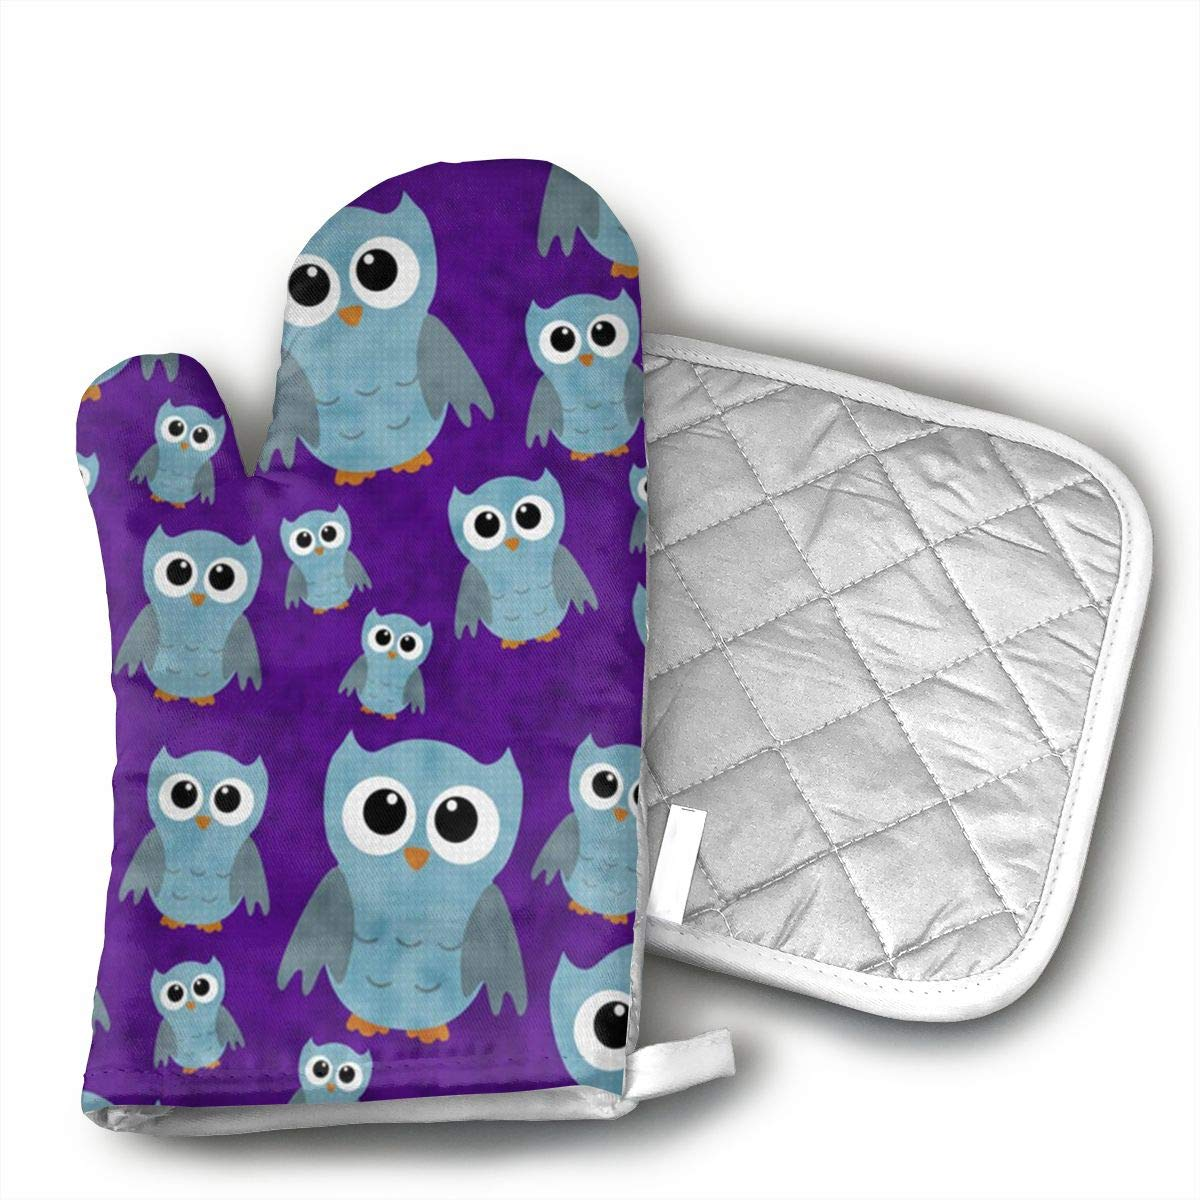 FSDGHVFIJTT ujd Sky Owl Neoprene Oven Mitts and Potholder Set-Heat Resistant Oven Gloves to Protect Hands and Surfaces with Non-Slip Grip, Hanging Loop-Ideal for Handling Hot Cookware Items